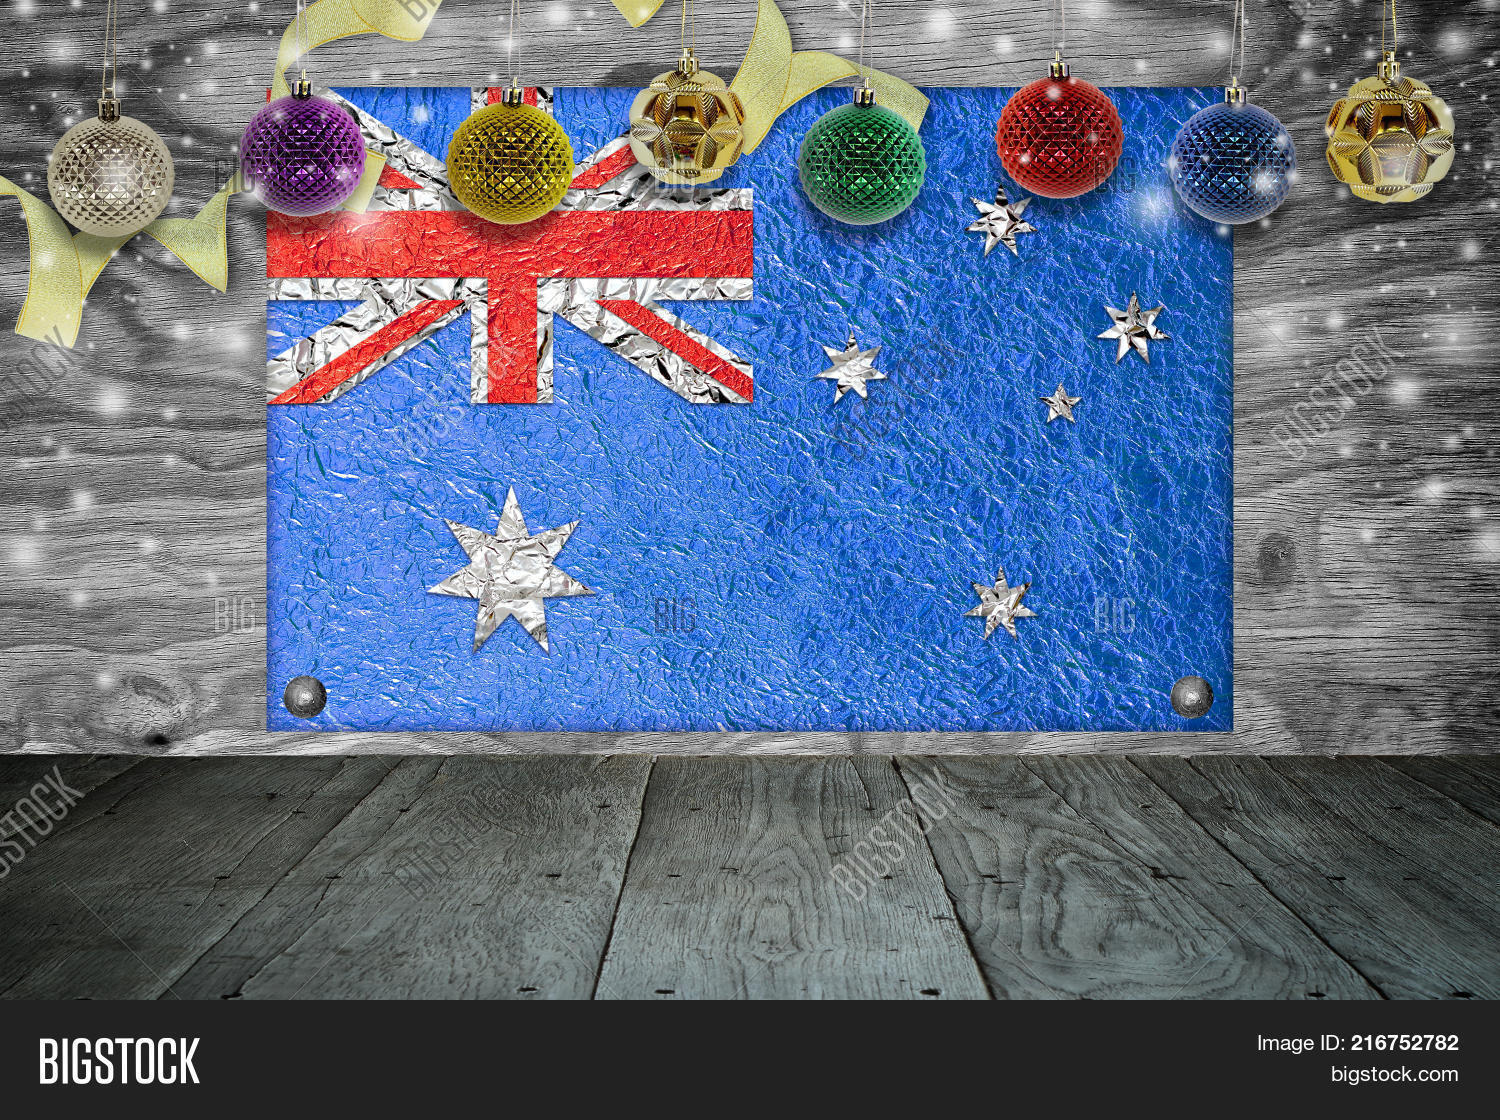 Christmas In Australia Background.Christmas Background Image Photo Free Trial Bigstock